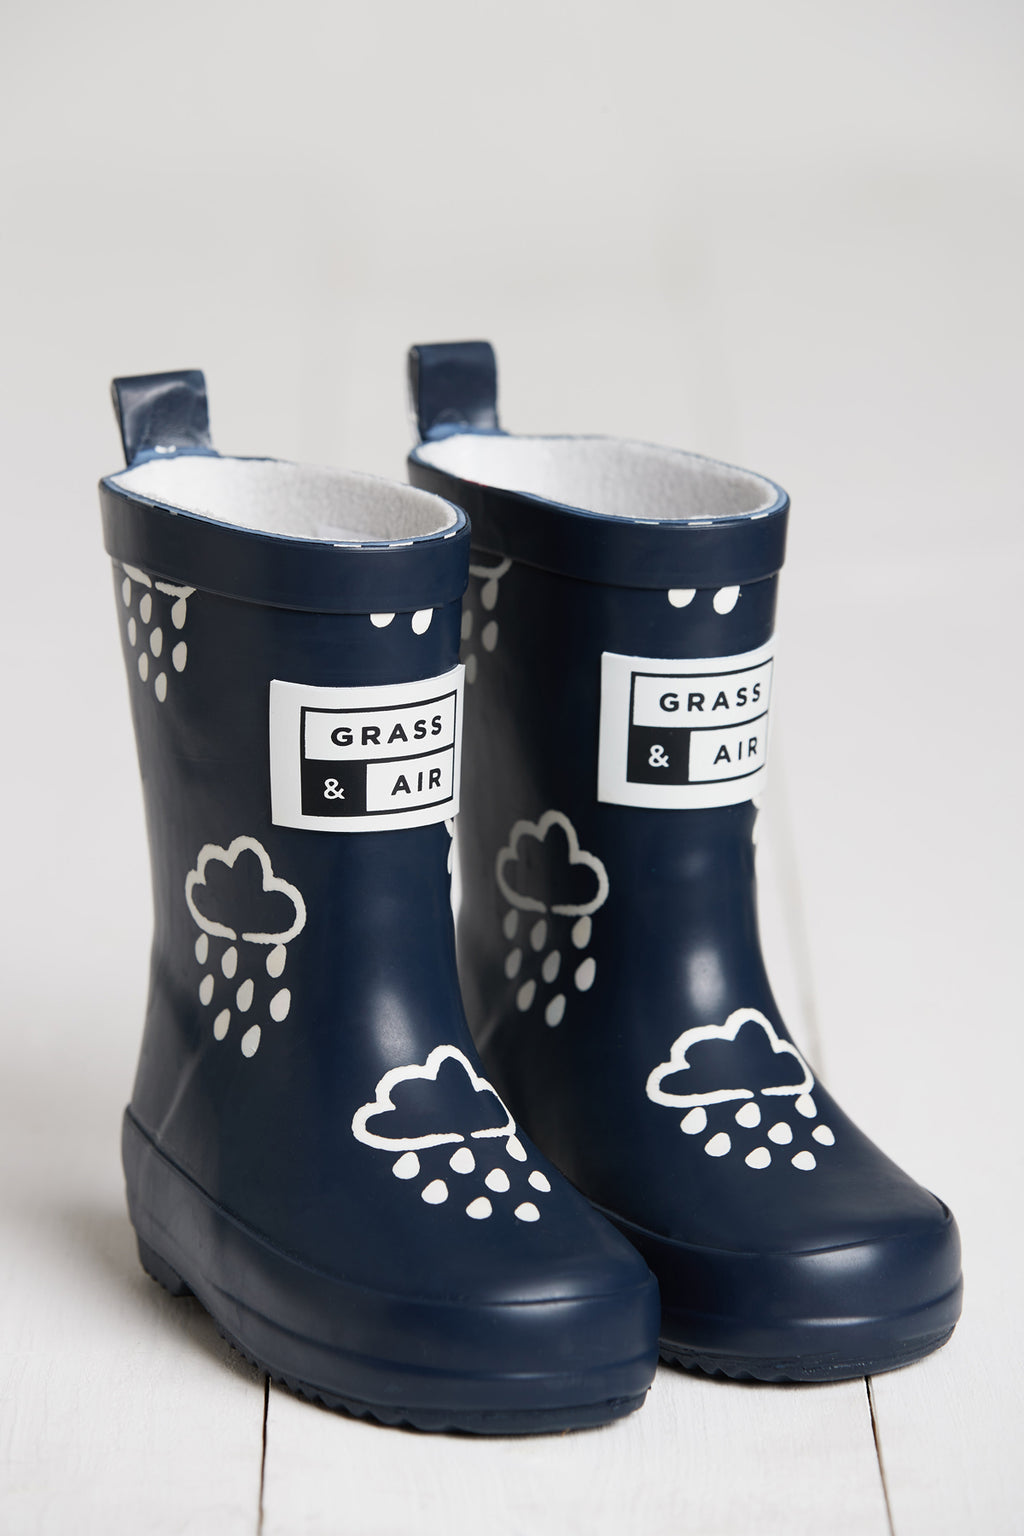 Grass & Air Navy Colour Changing Wellies